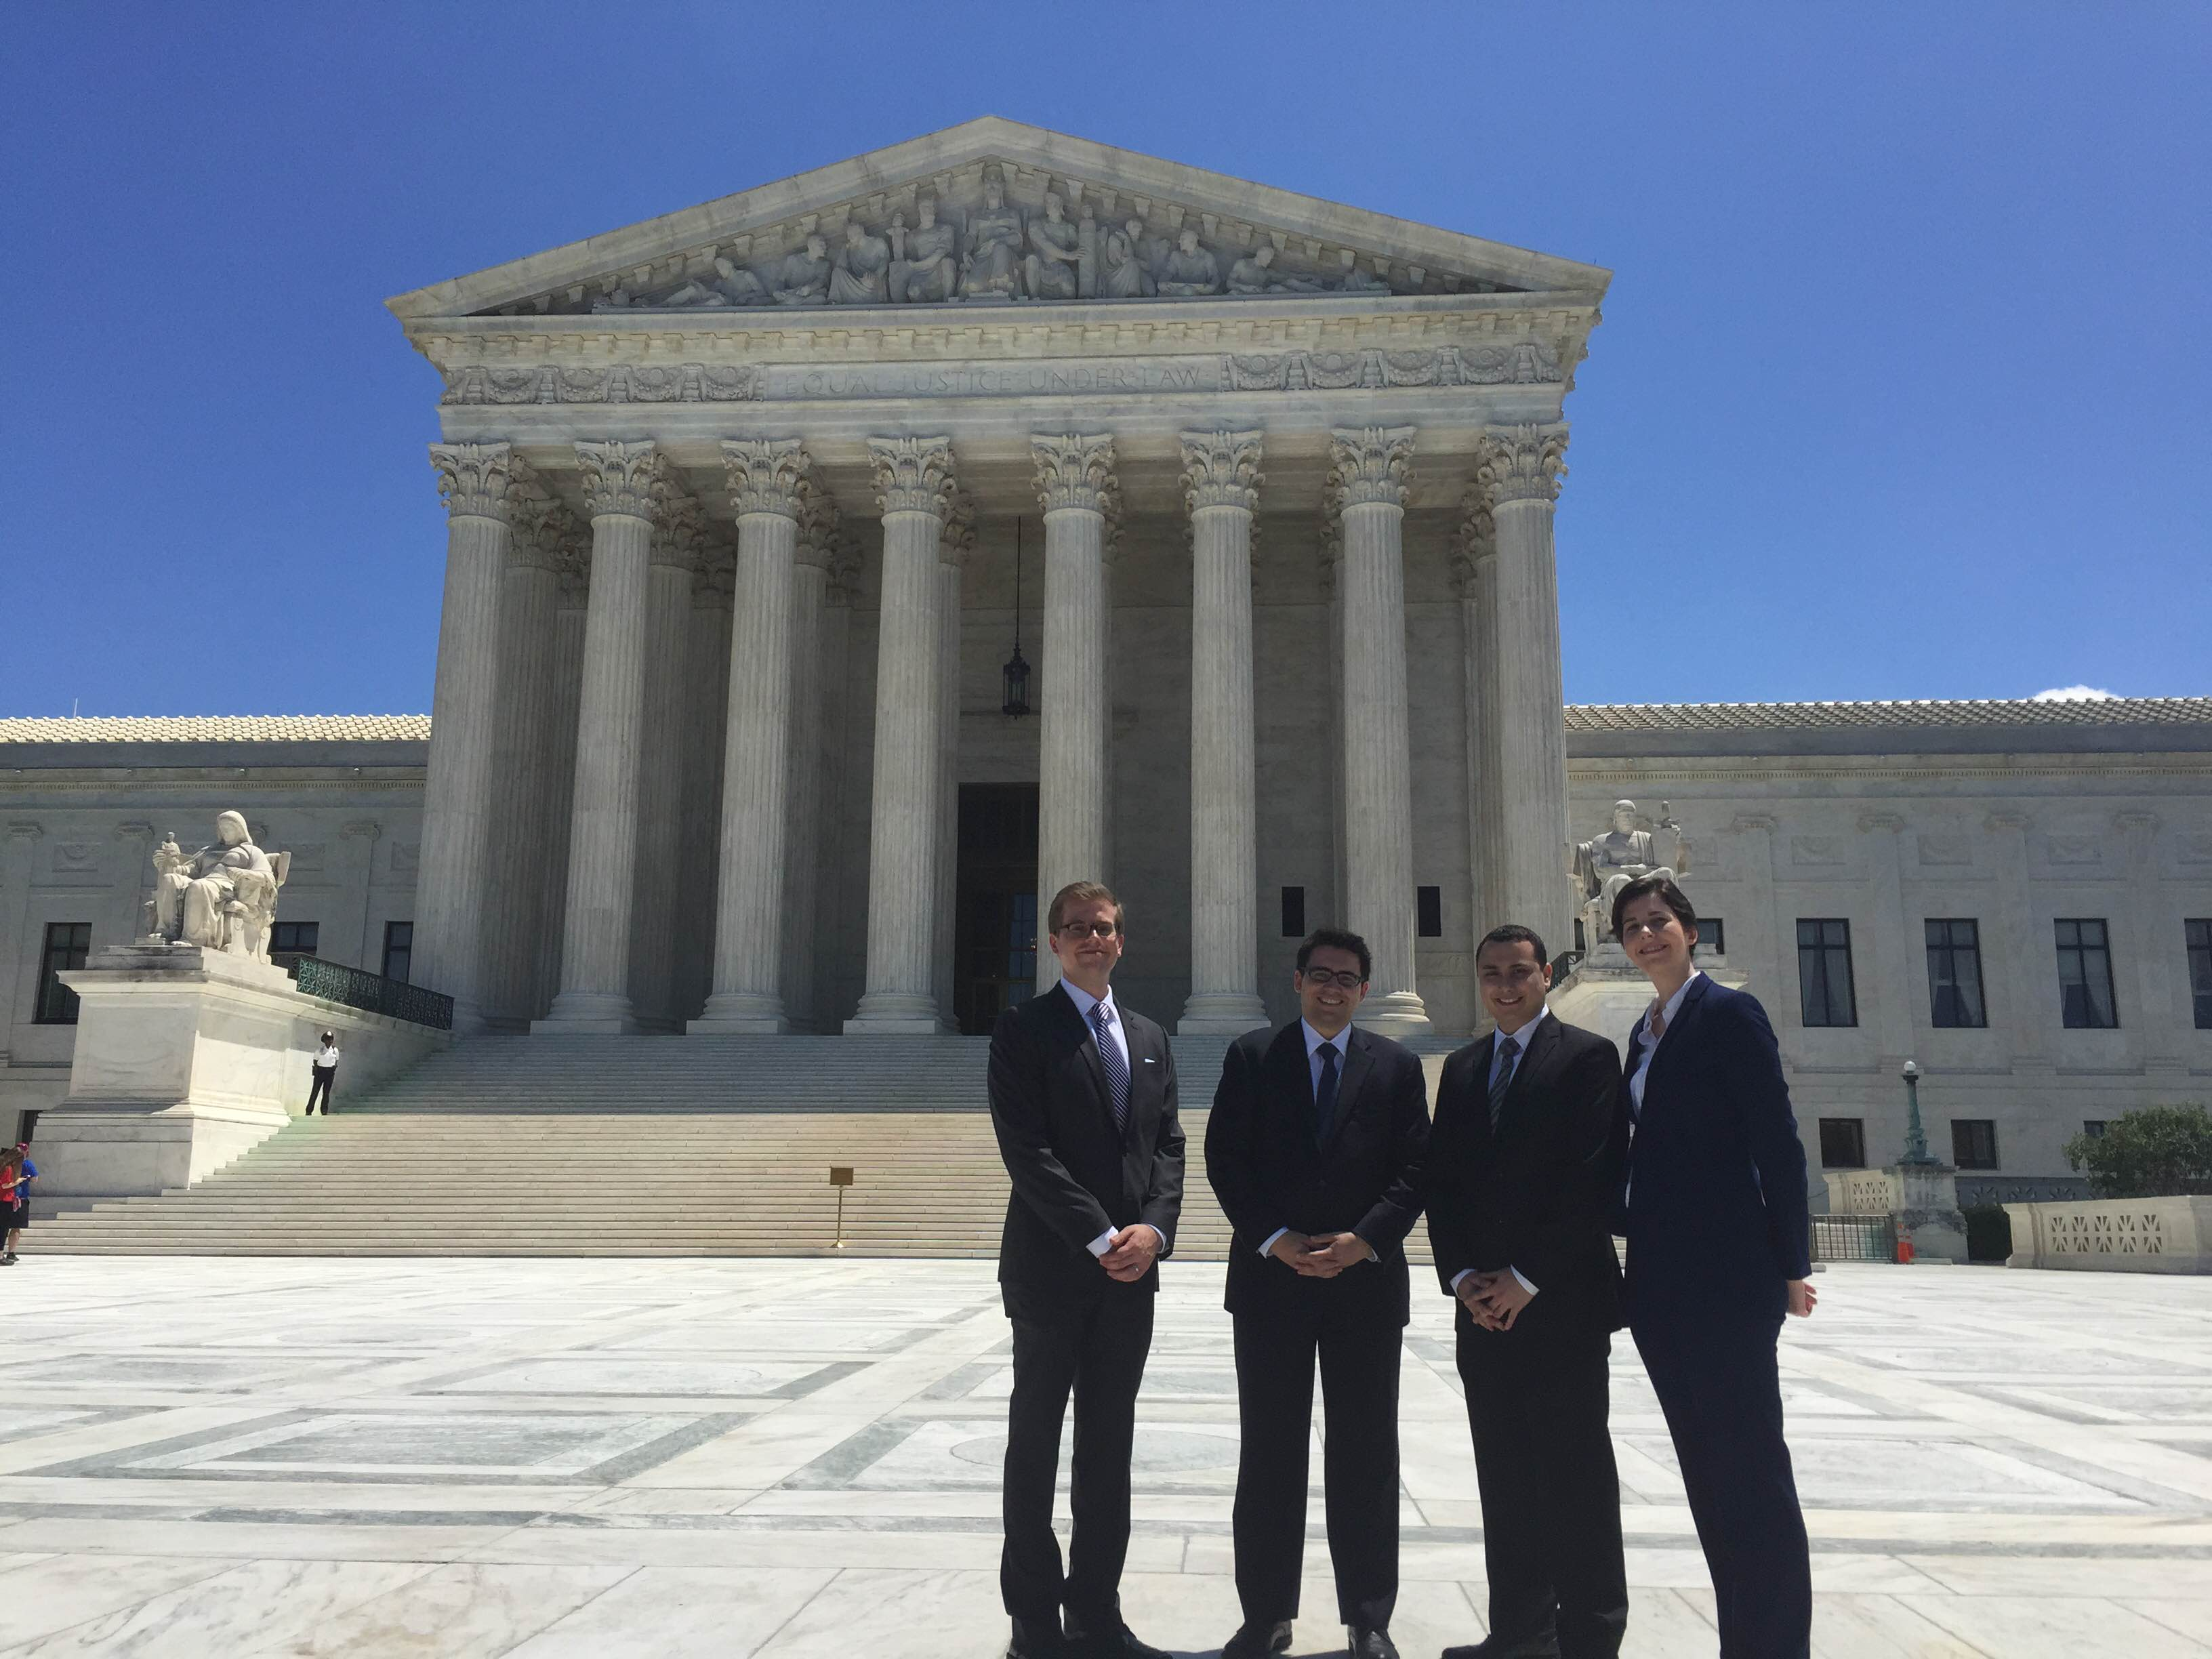 A few of the 2015 Washington DC summer associates enjoyed a tour of the US Supreme Court